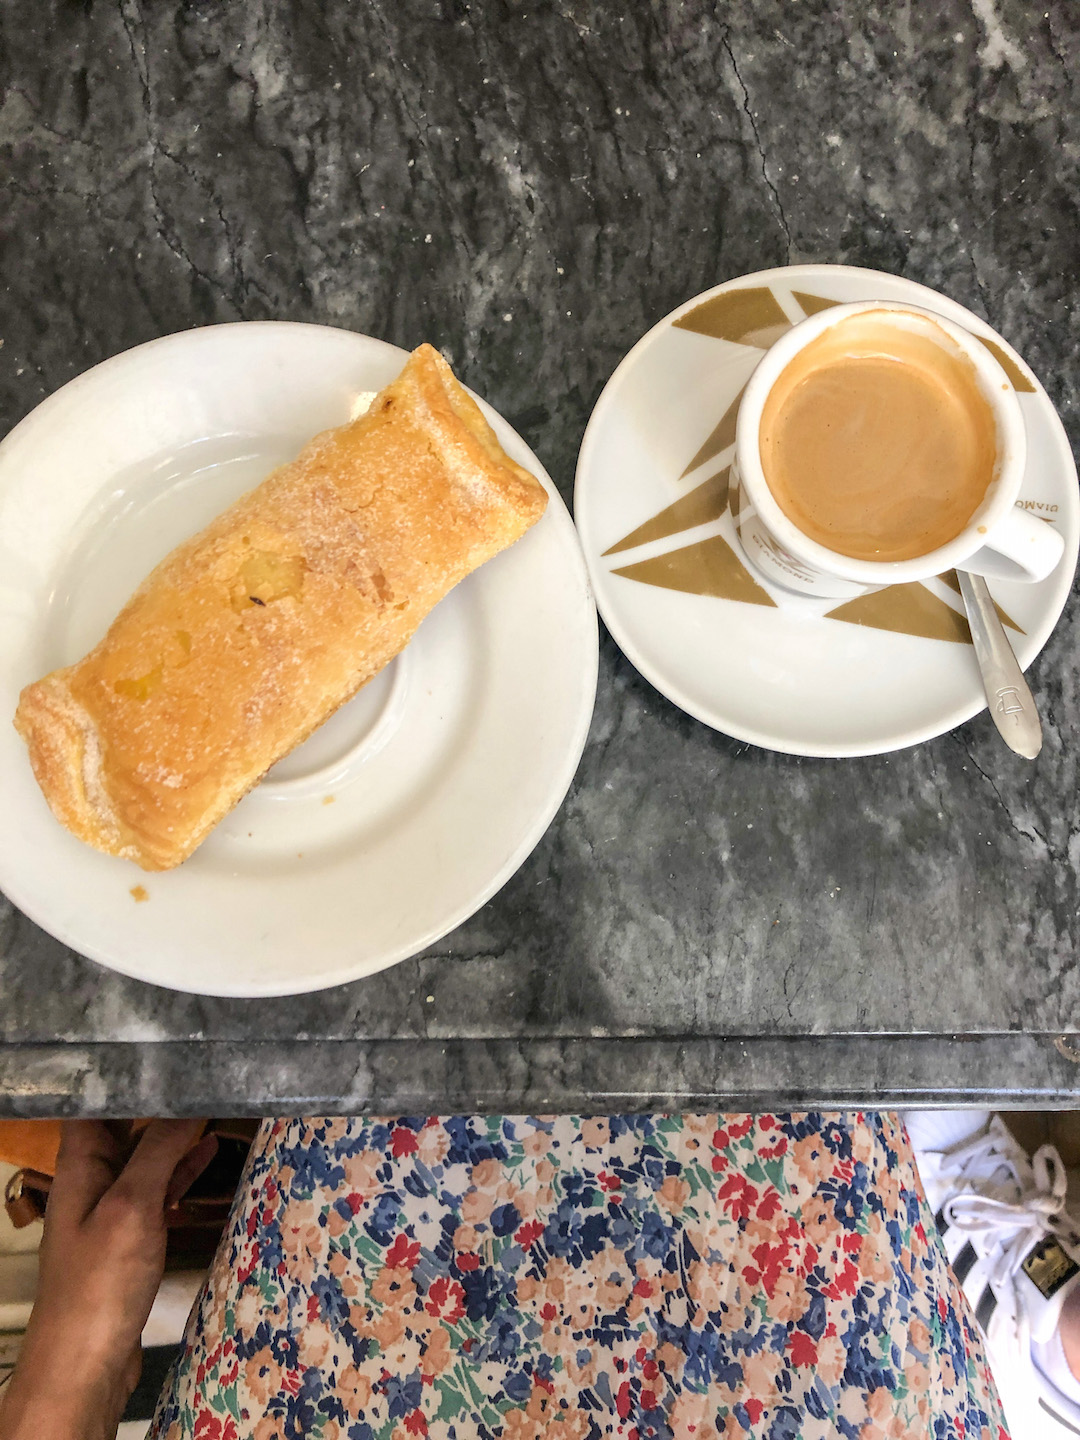 Her_Travel_Edit_Sintra_Pastry